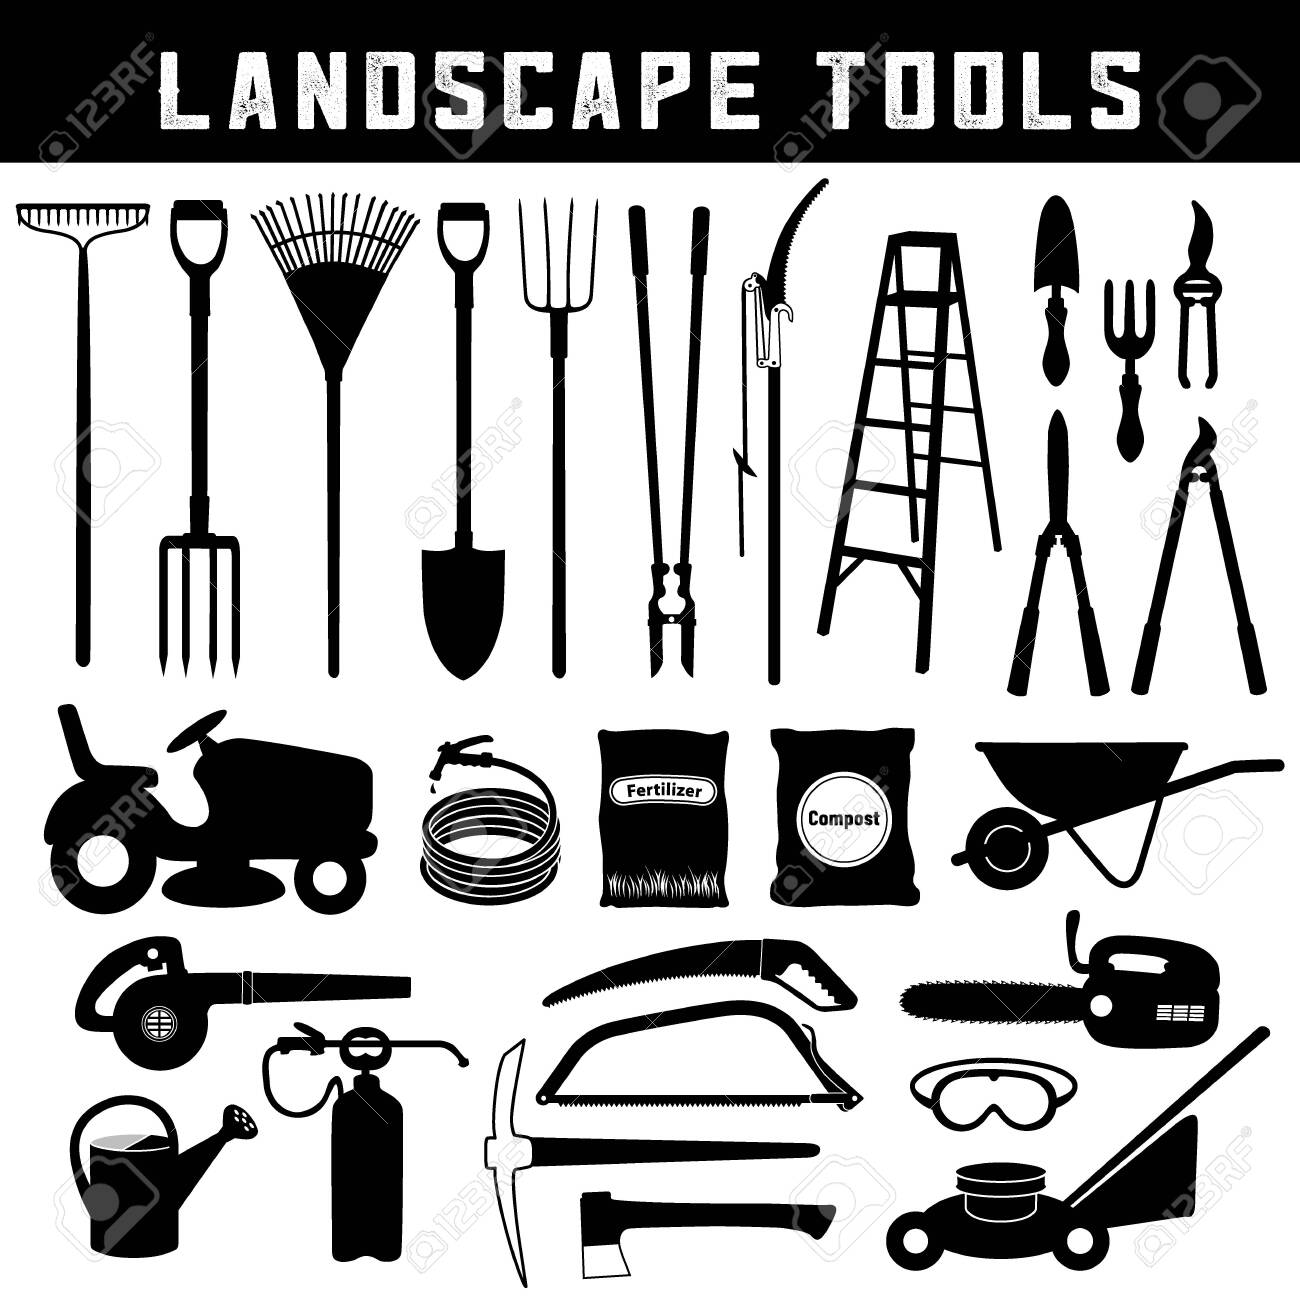 Landscape Tools, Do it Yourself for garden, lawn, grass, trees, orchard care and maintenance, twenty-six silhouette icons isolated on white background. - 154269989